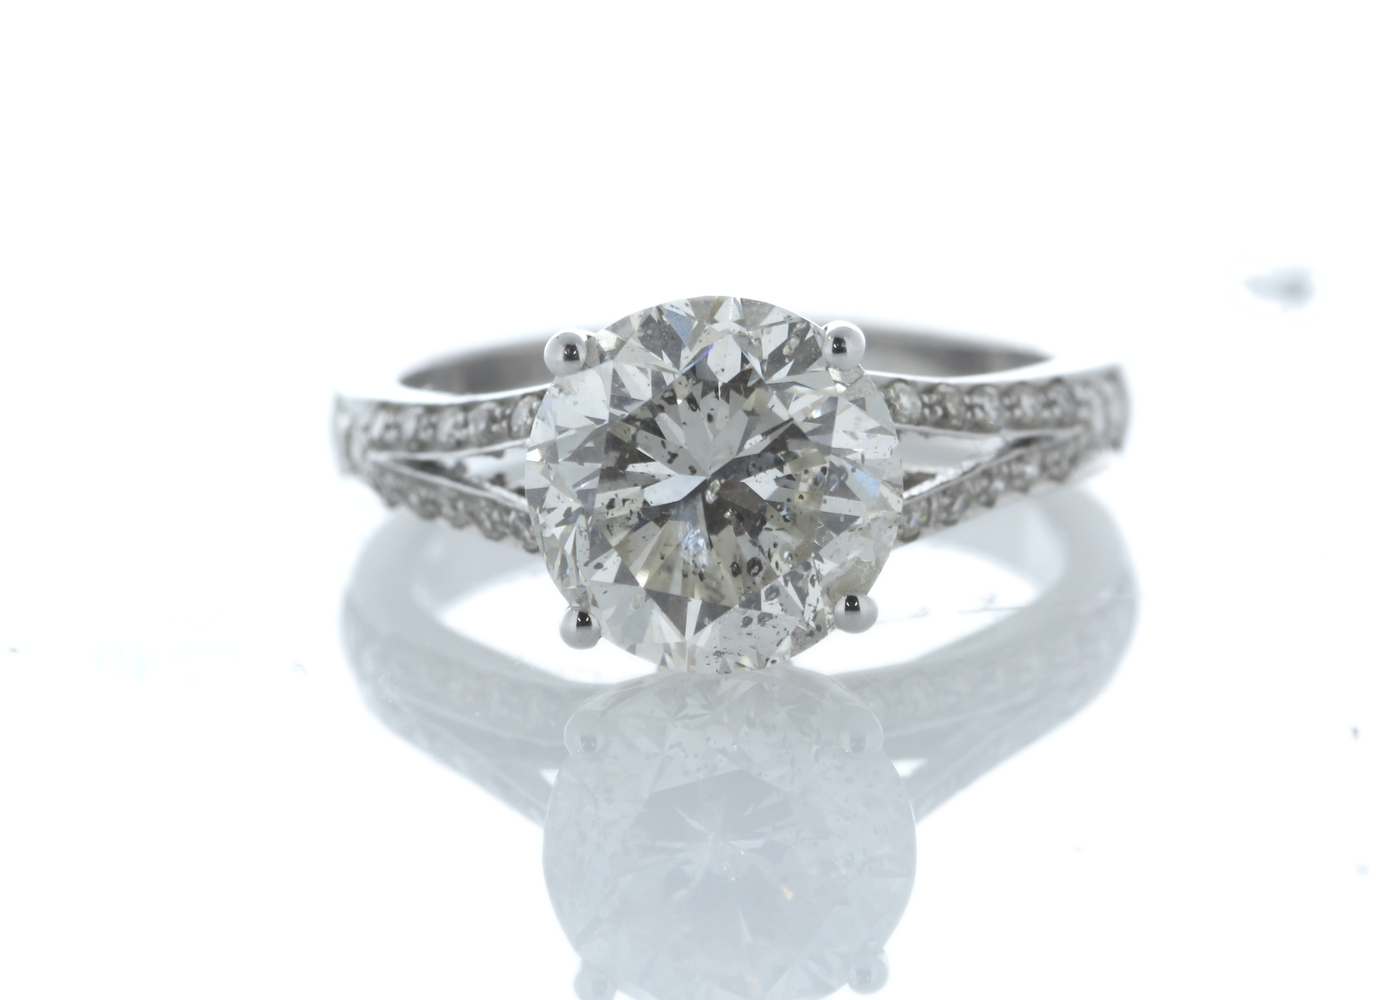 18ct White Gold Single Stone Prong Set With Stone Set Shoulders Diamond Ring 3.56 Carats